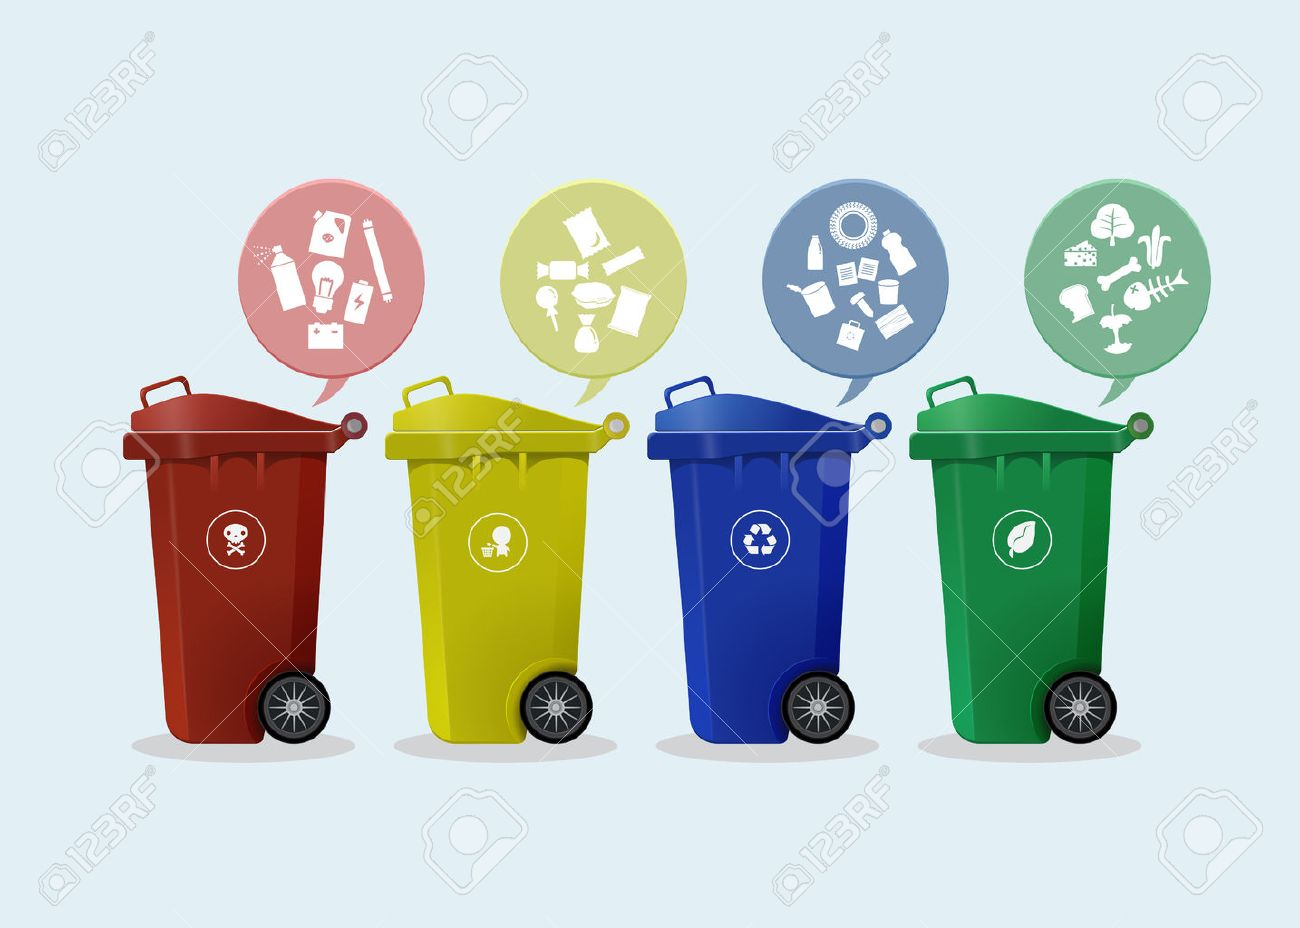 Different Colored wheelie bins set with waste icon, illustration of waste management concept - 31402178